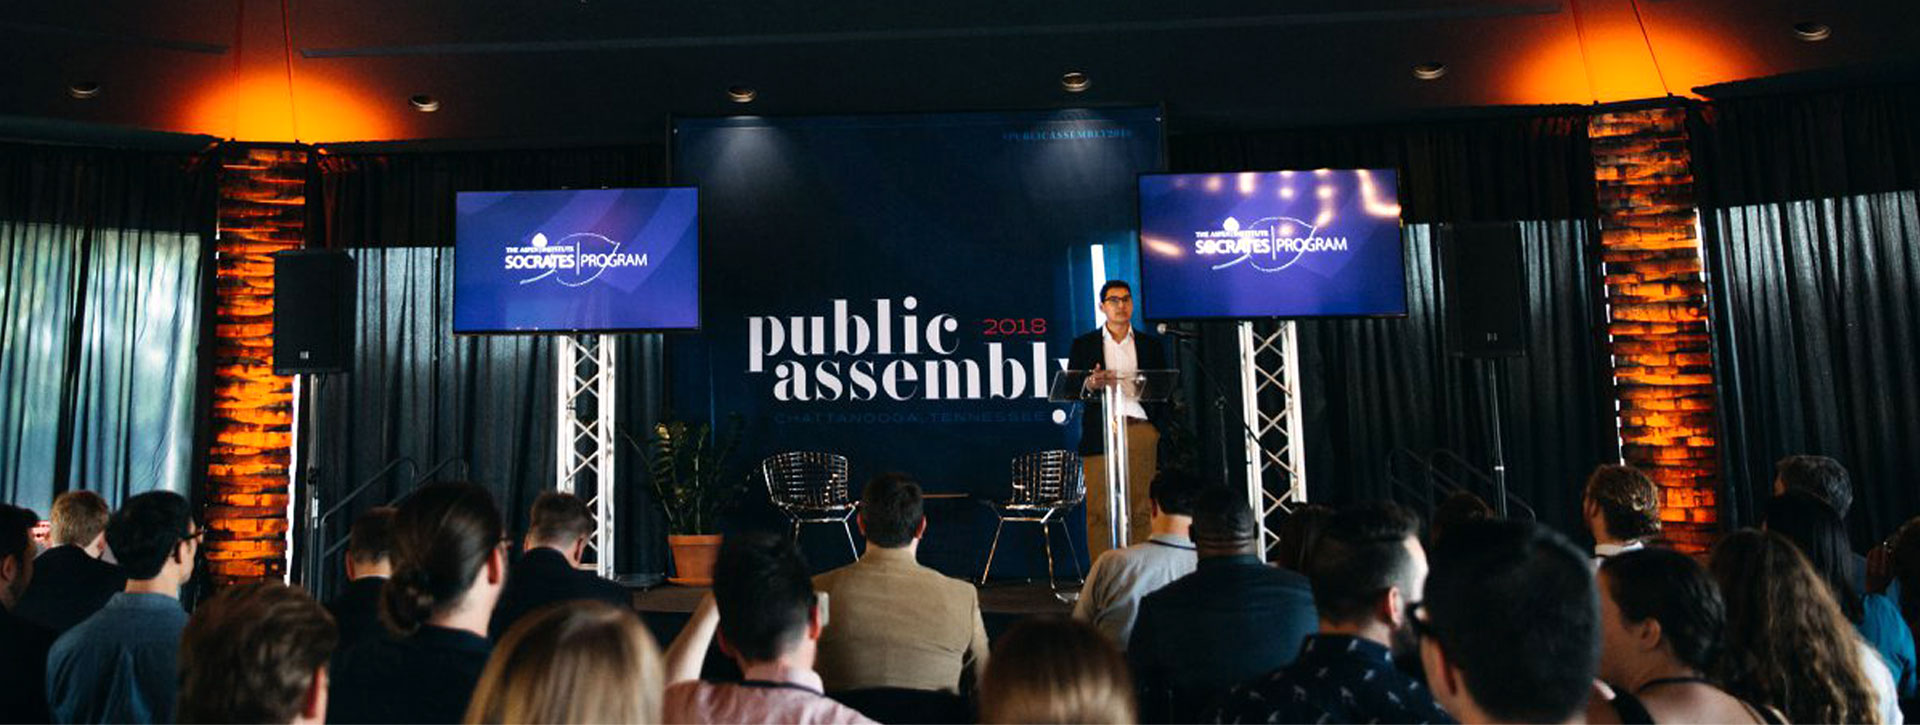 Public Assembly - Event Design, Environmental Design